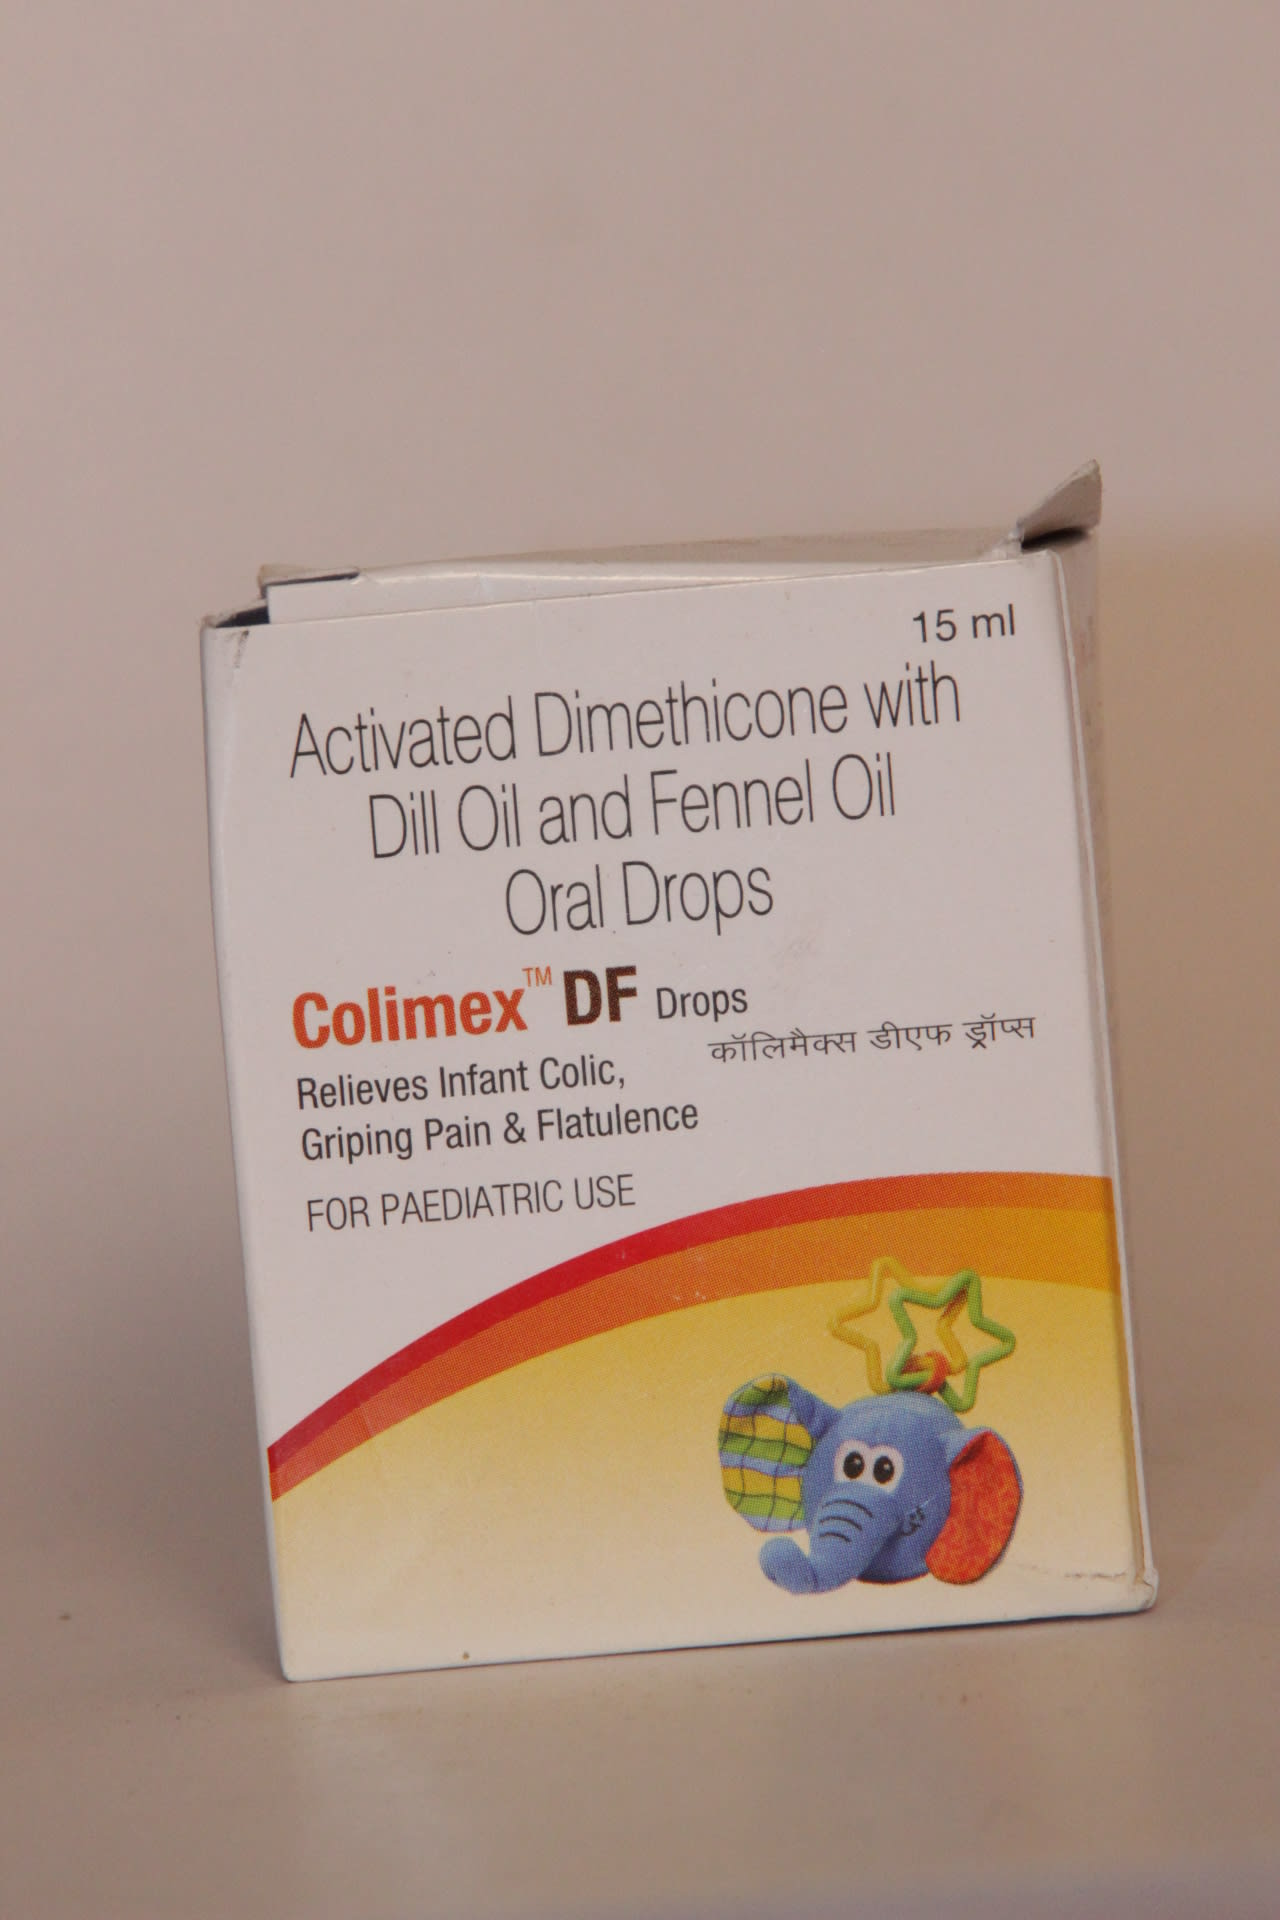 Colimex DF Oral Drops